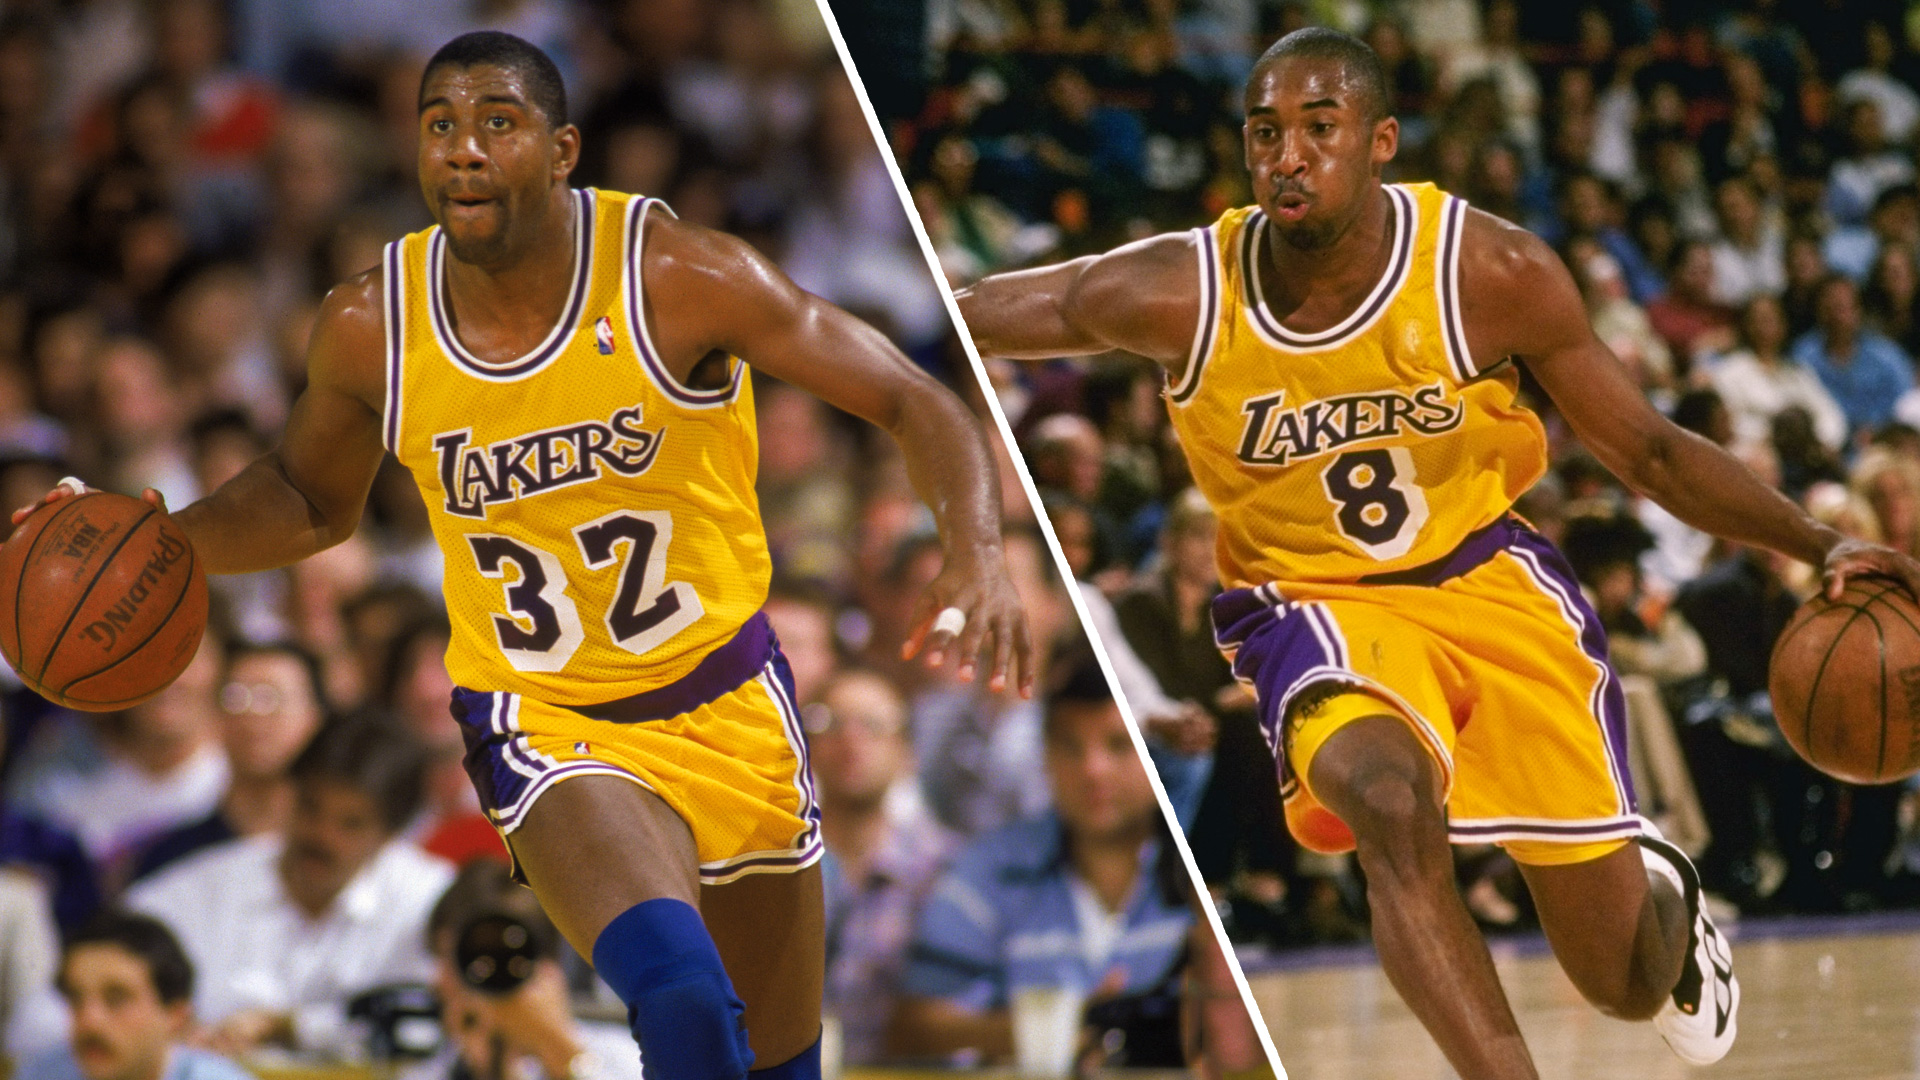 Magic Johnson not Kobe Bryant is the greatest Laker — even if he